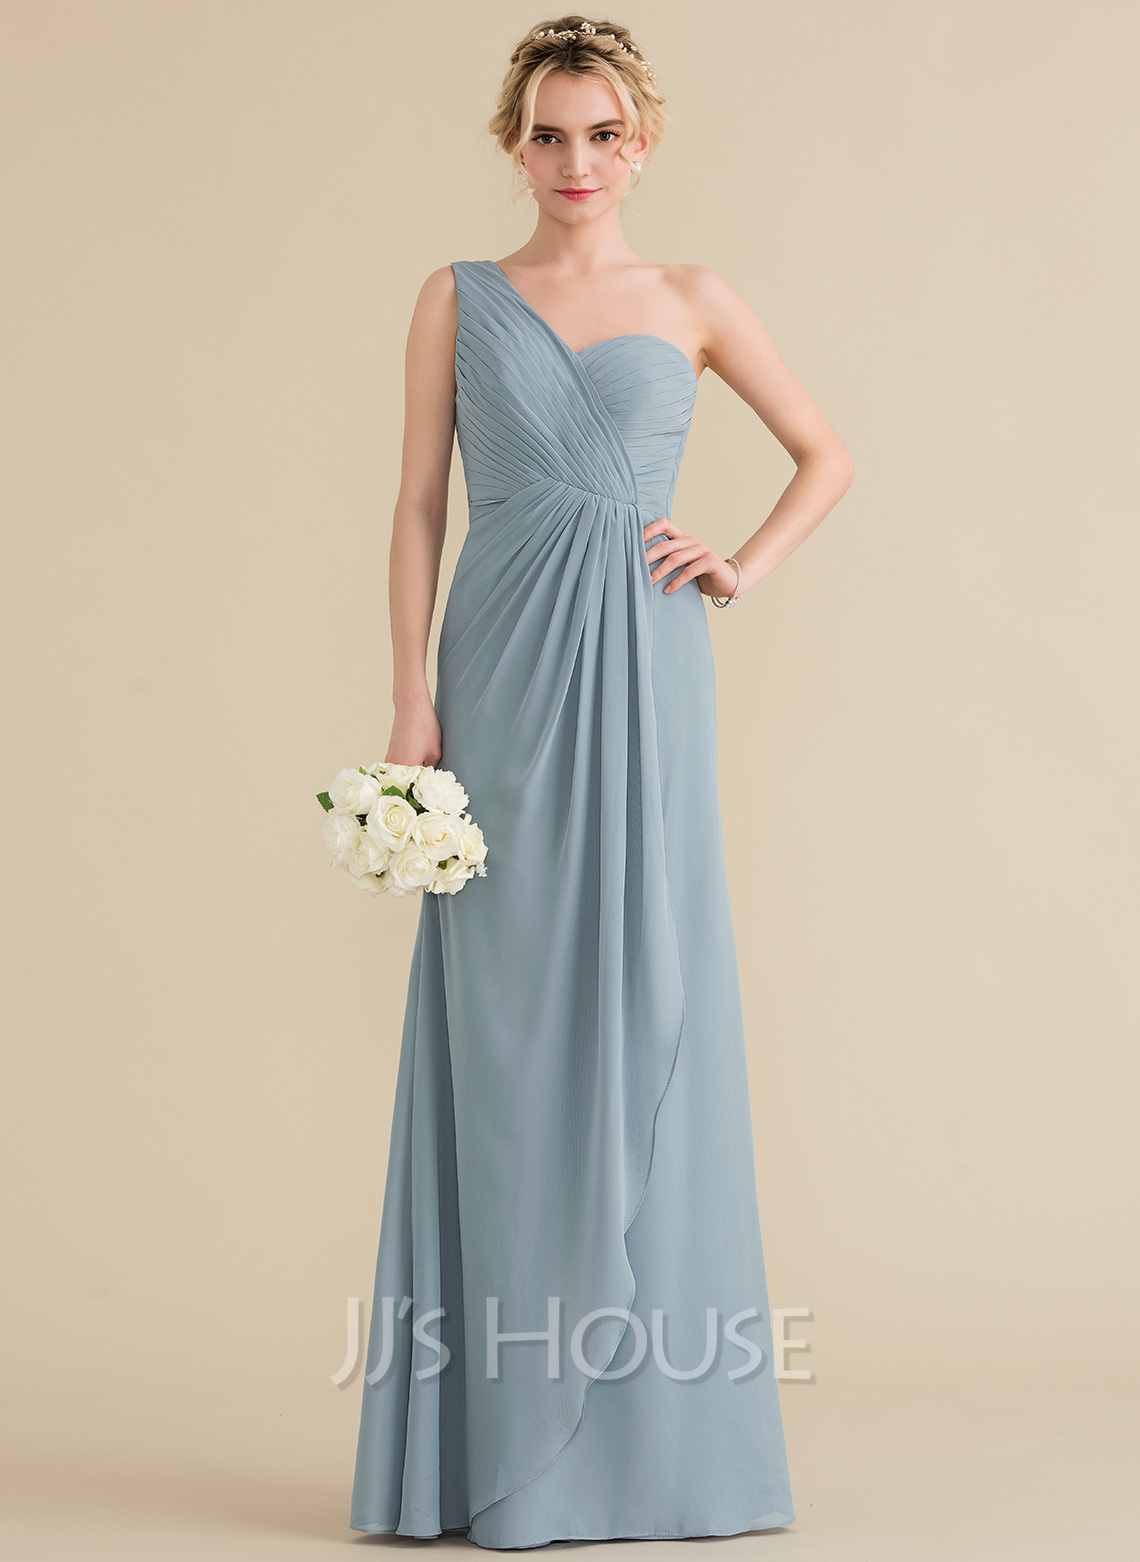 06872589d98f A-Line/Princess One-Shoulder Floor-Length Chiffon Bridesmaid Dress With  Cascading. Loading zoom